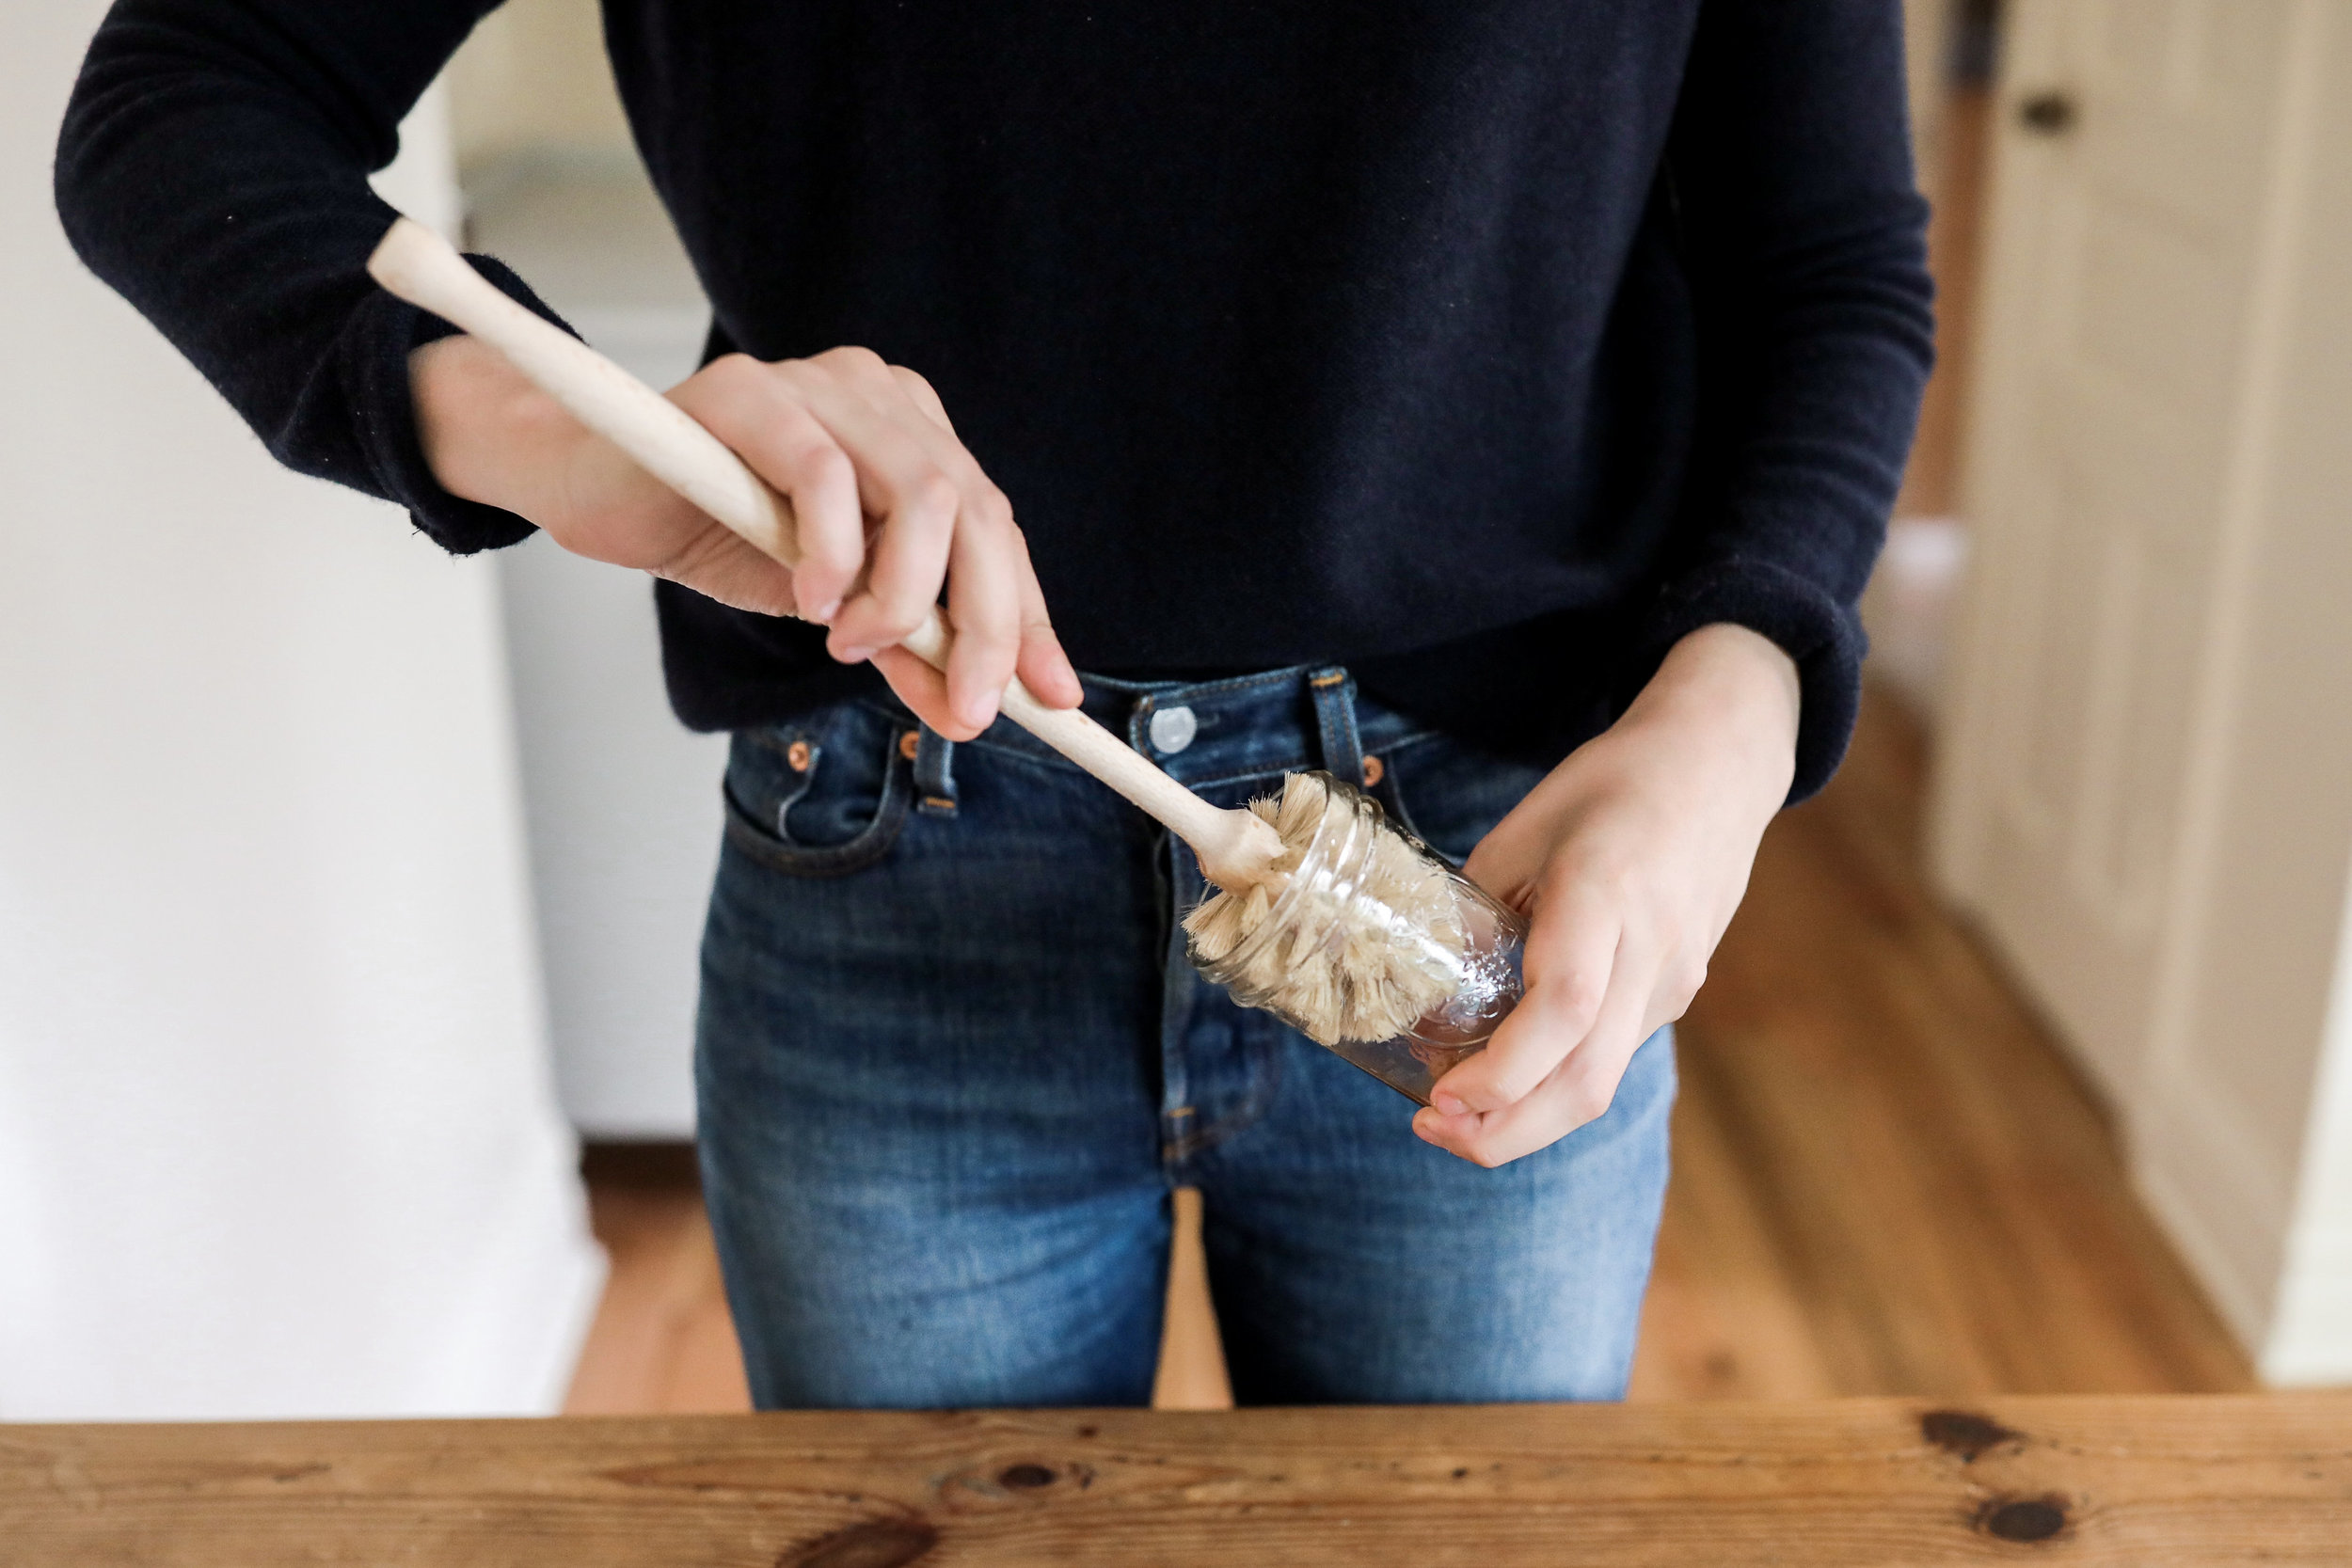 Plastic-free, compostable dish brushes for a zero waste kitchen | How to use (and reuse) wooden dish brushes around the home | Litterless